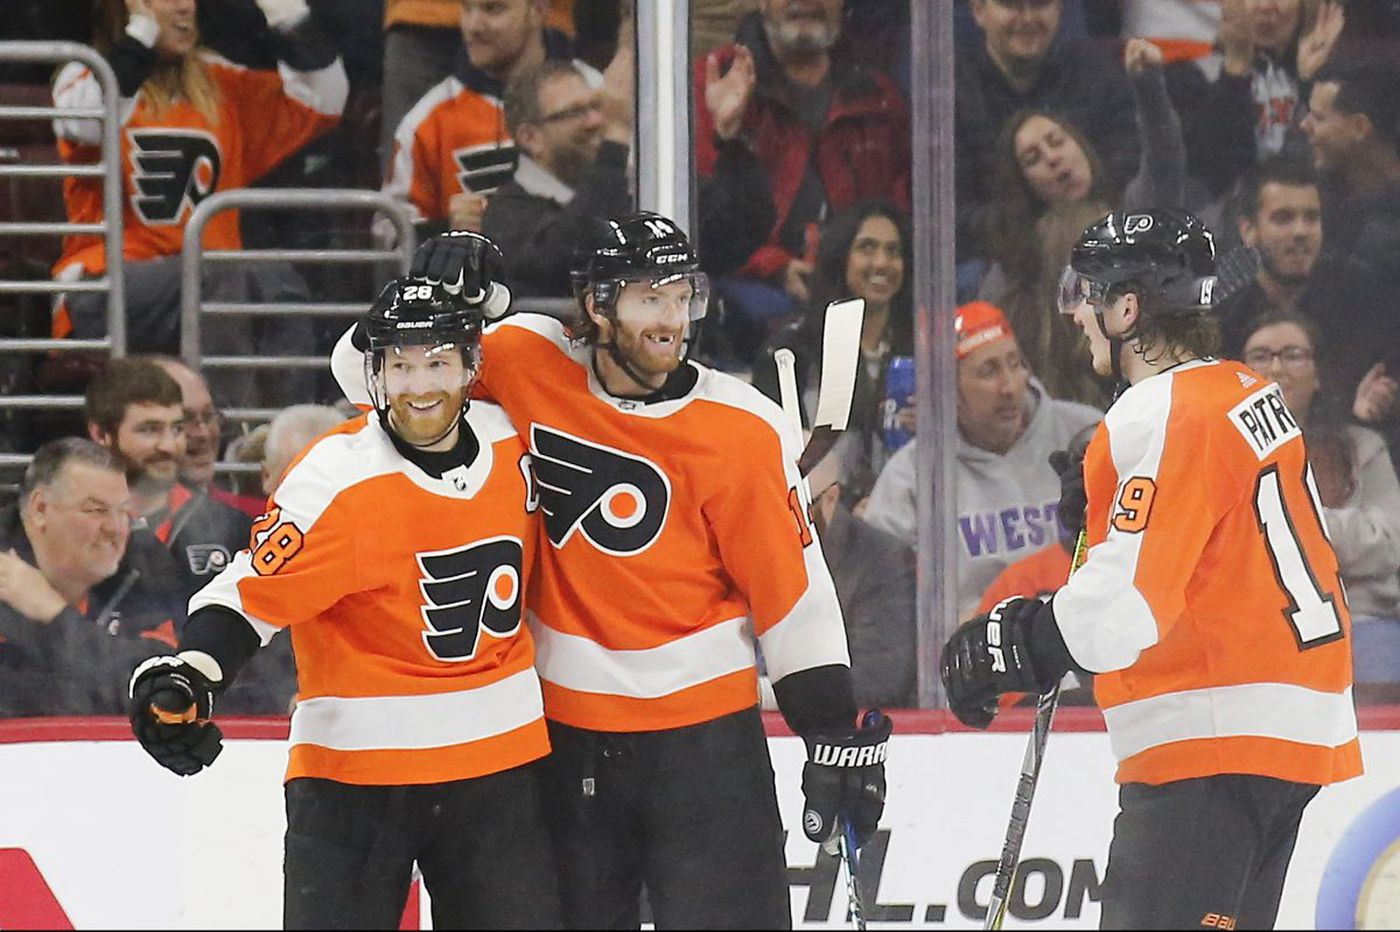 Flyers clinch playoff berth behind Claude Giroux's hat trick